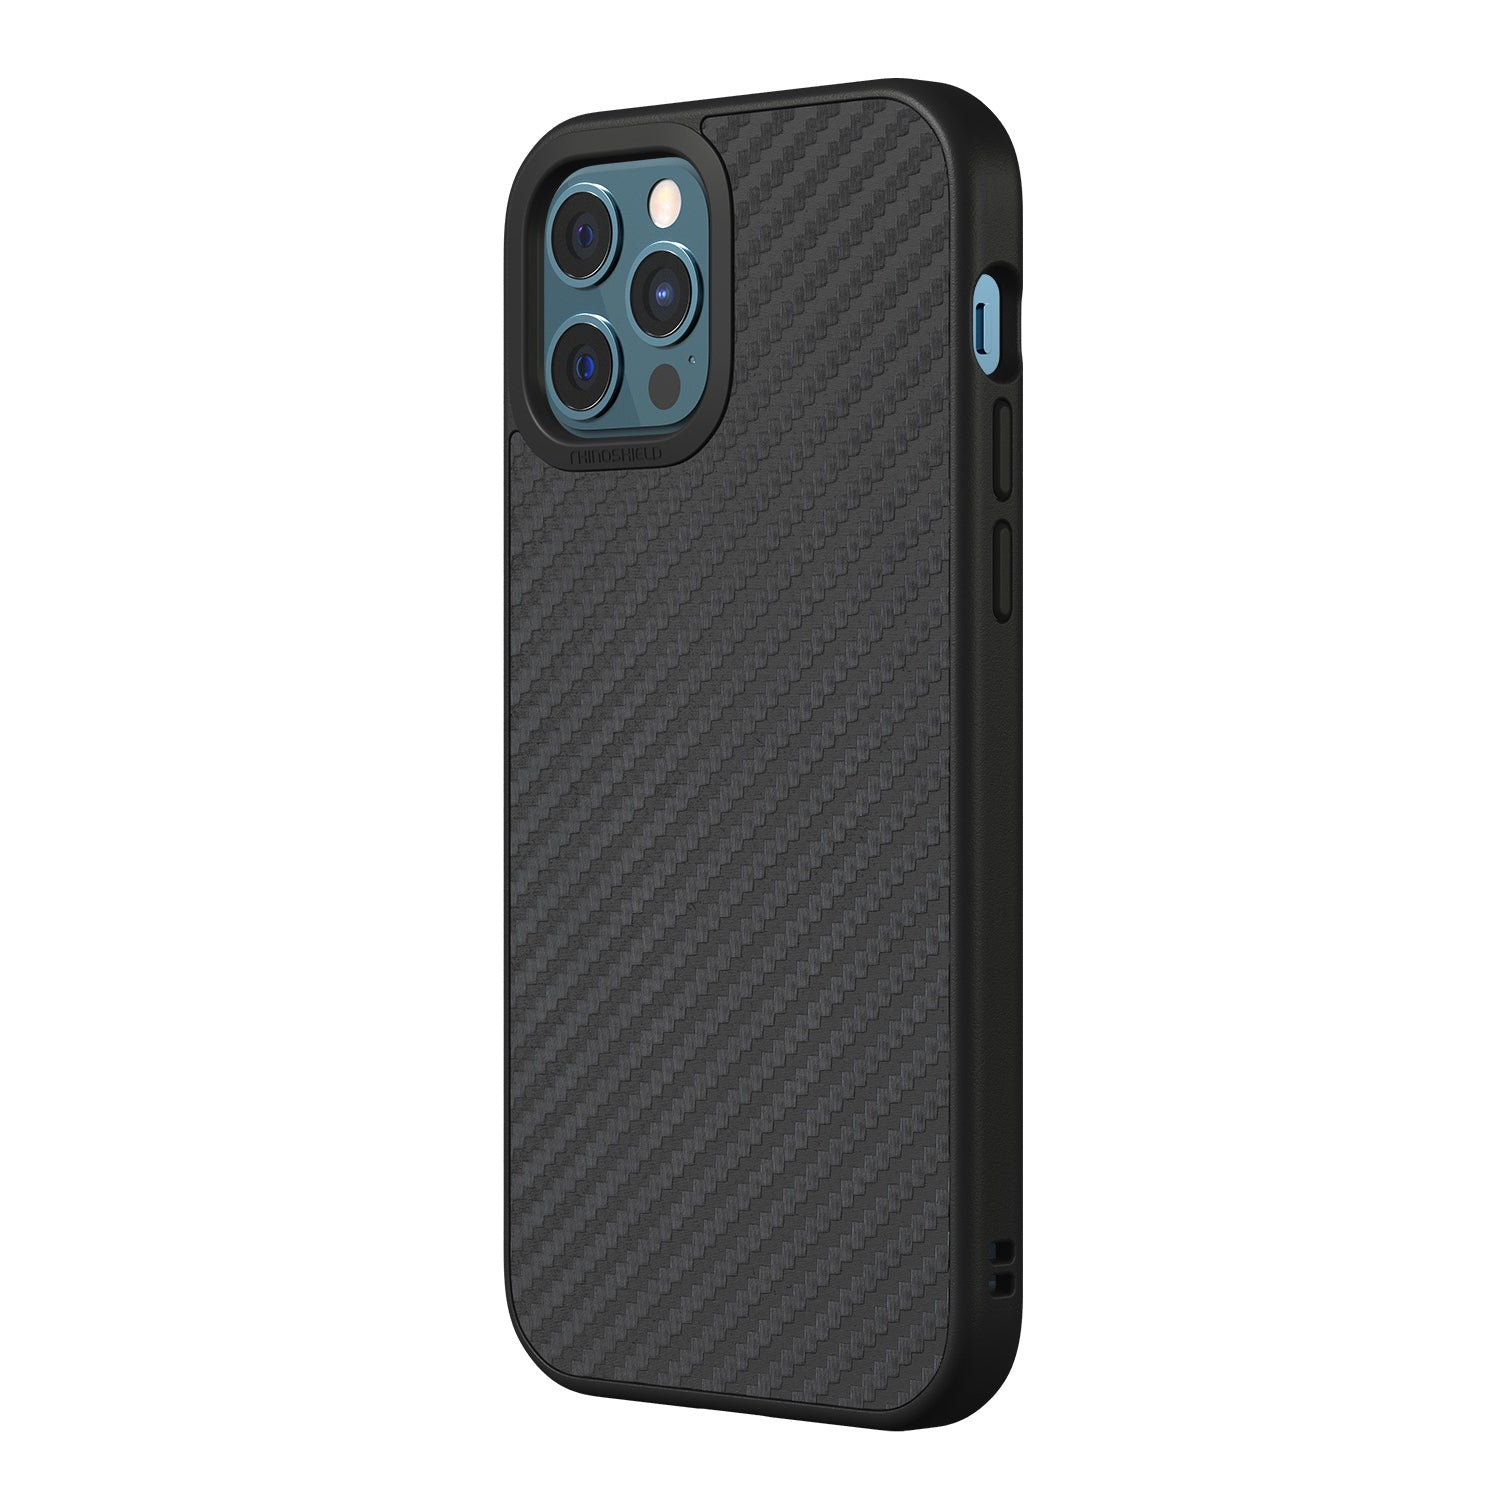 RhinoShield SolidSuit Rugged Case For iPhone 12 / 12 Pro  - Carbon Fiber